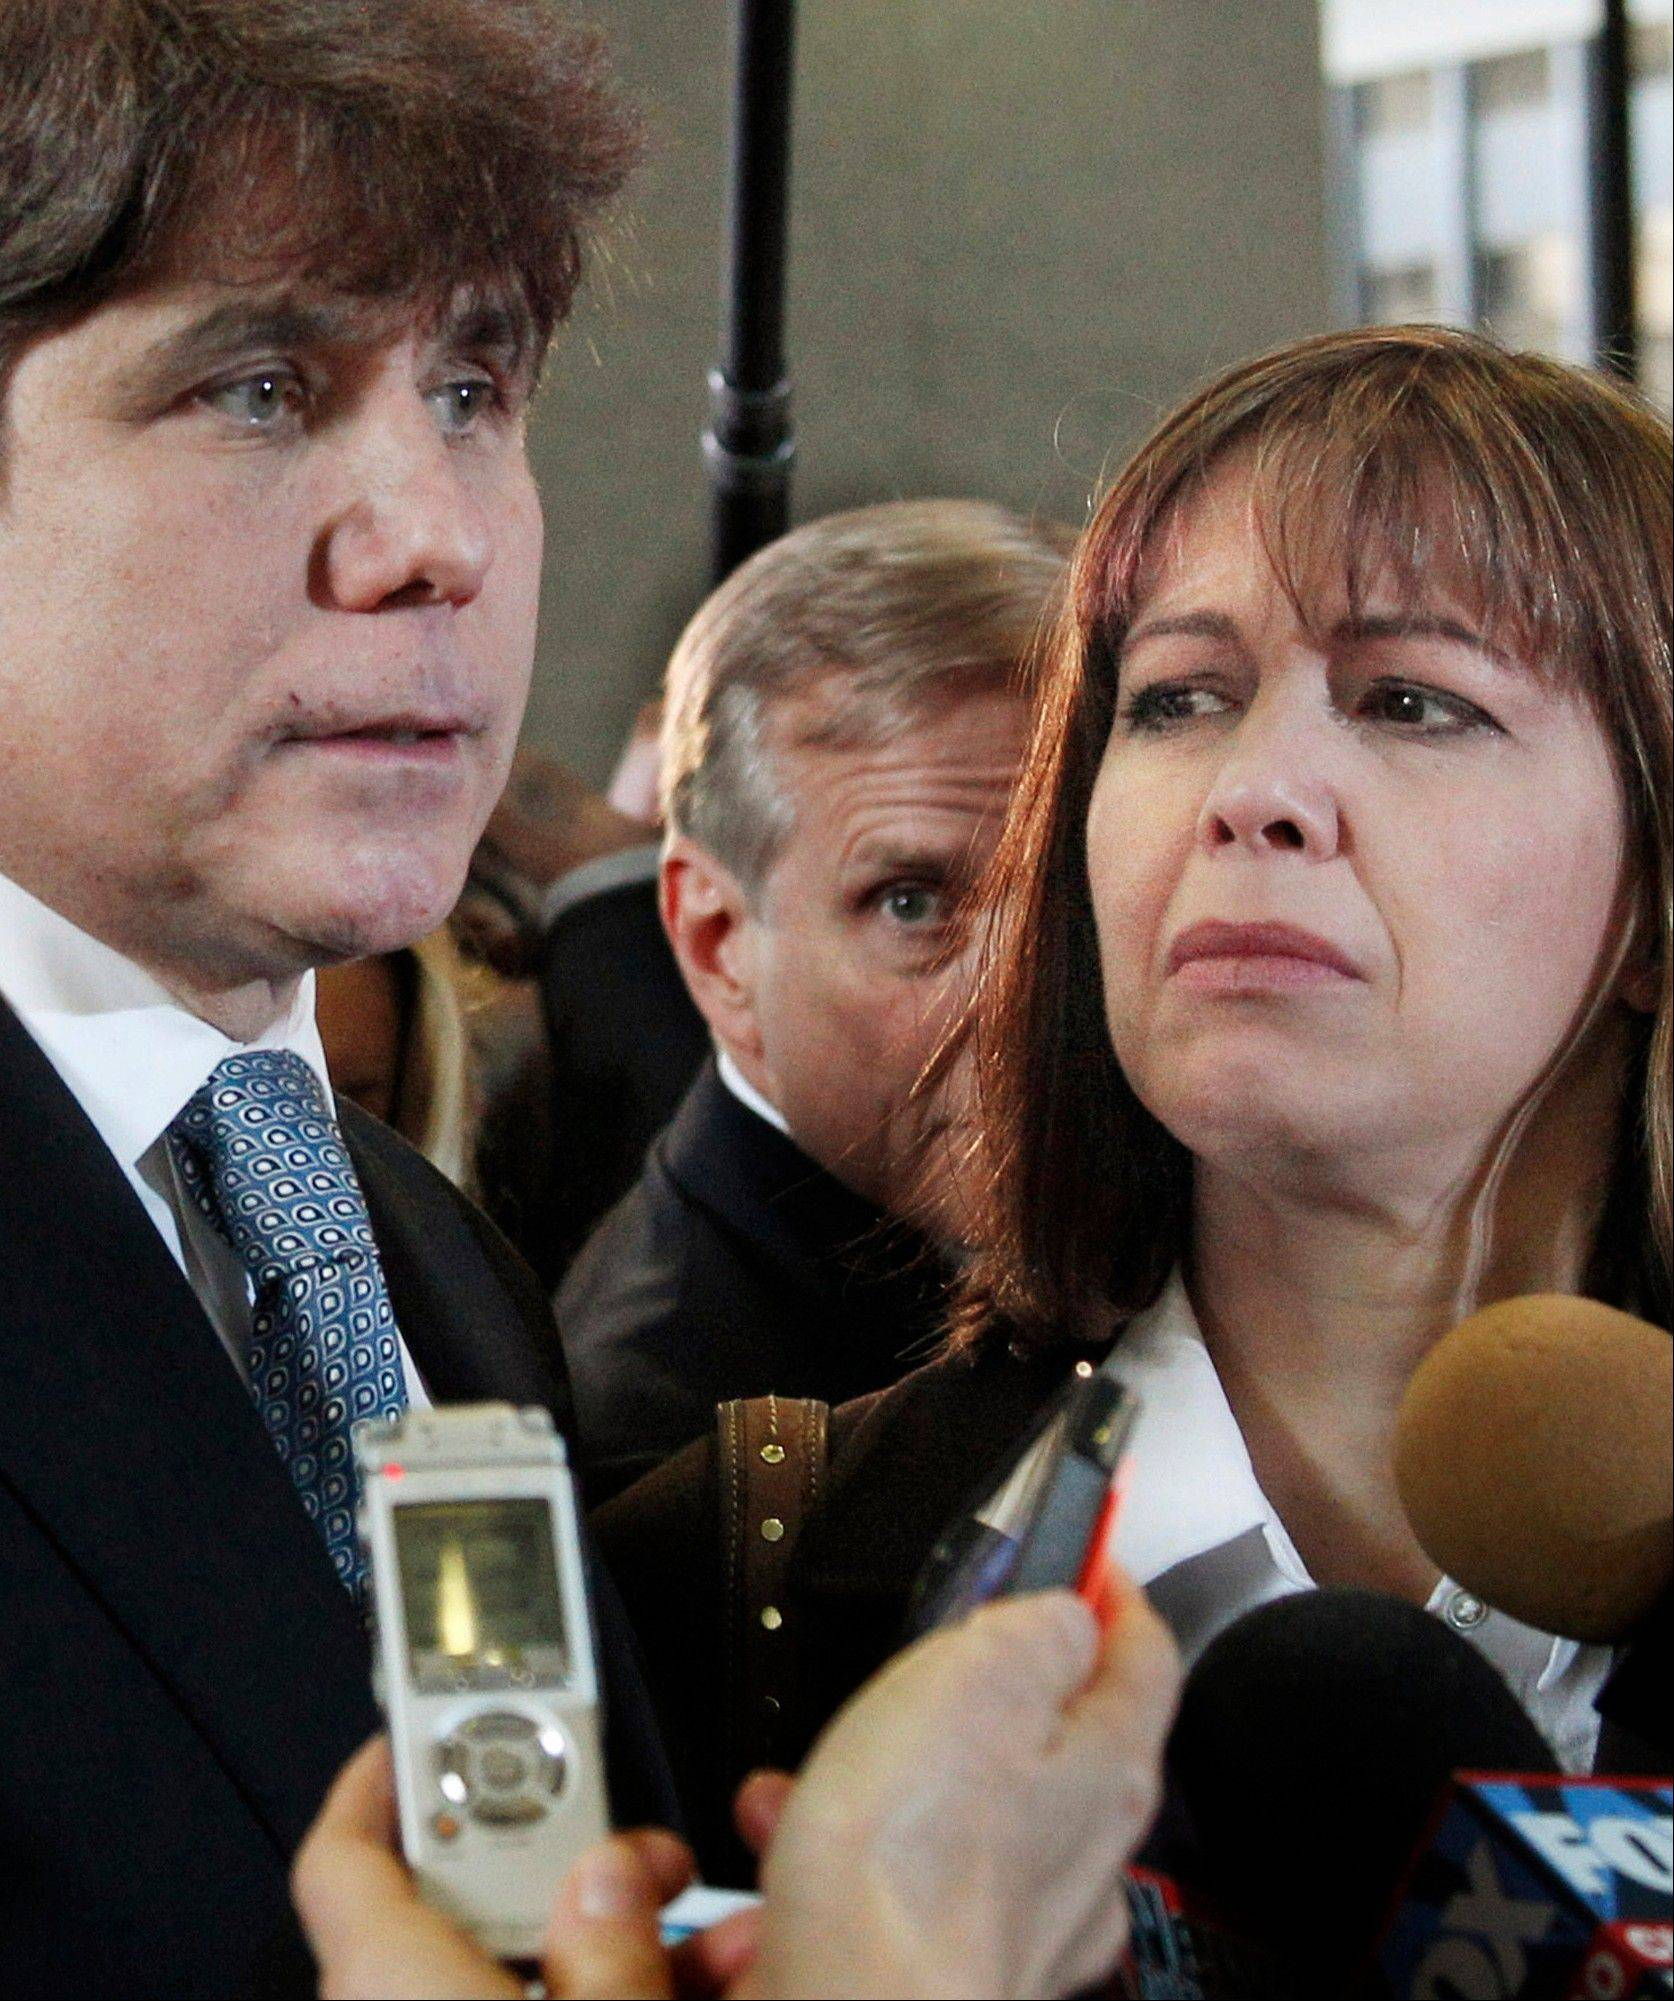 Former Gov. Rod Blagojevich speaks to reporters in December after being sentenced for 14 years in prison on 18 corruption counts, including trying to auction off President Barack Obama's old Senate seat.